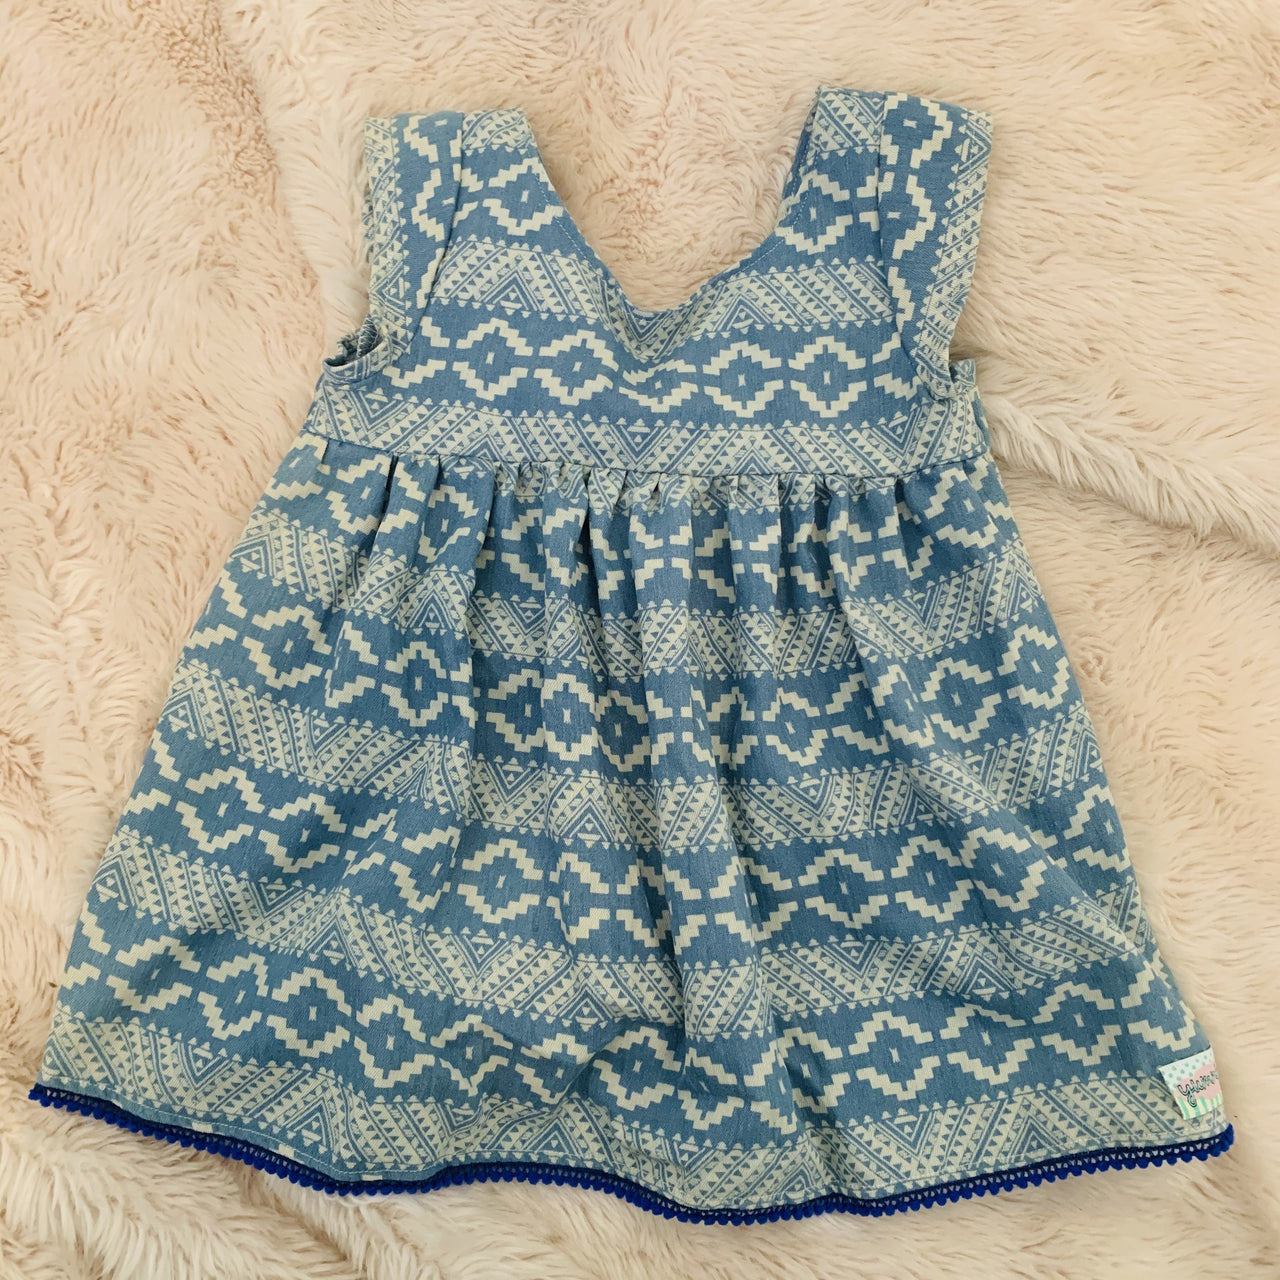 Destash - Yumminess  - size 4 - EUC